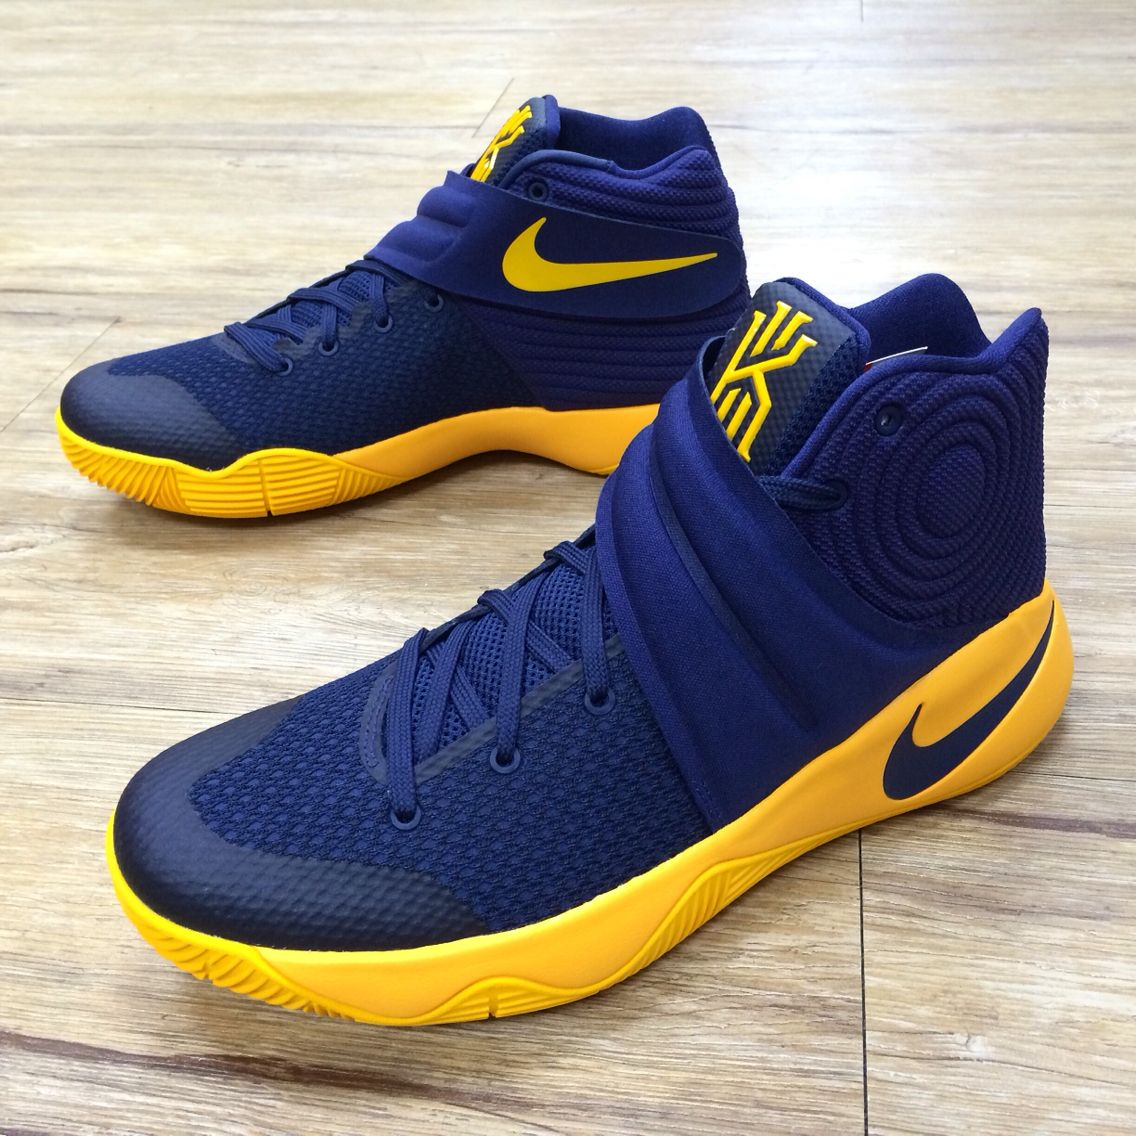 a30d9f96affab Nike Kyrie 2 EP II Irving Cavs Playoffs PE Navy Gold Mens Basketball  820537-447